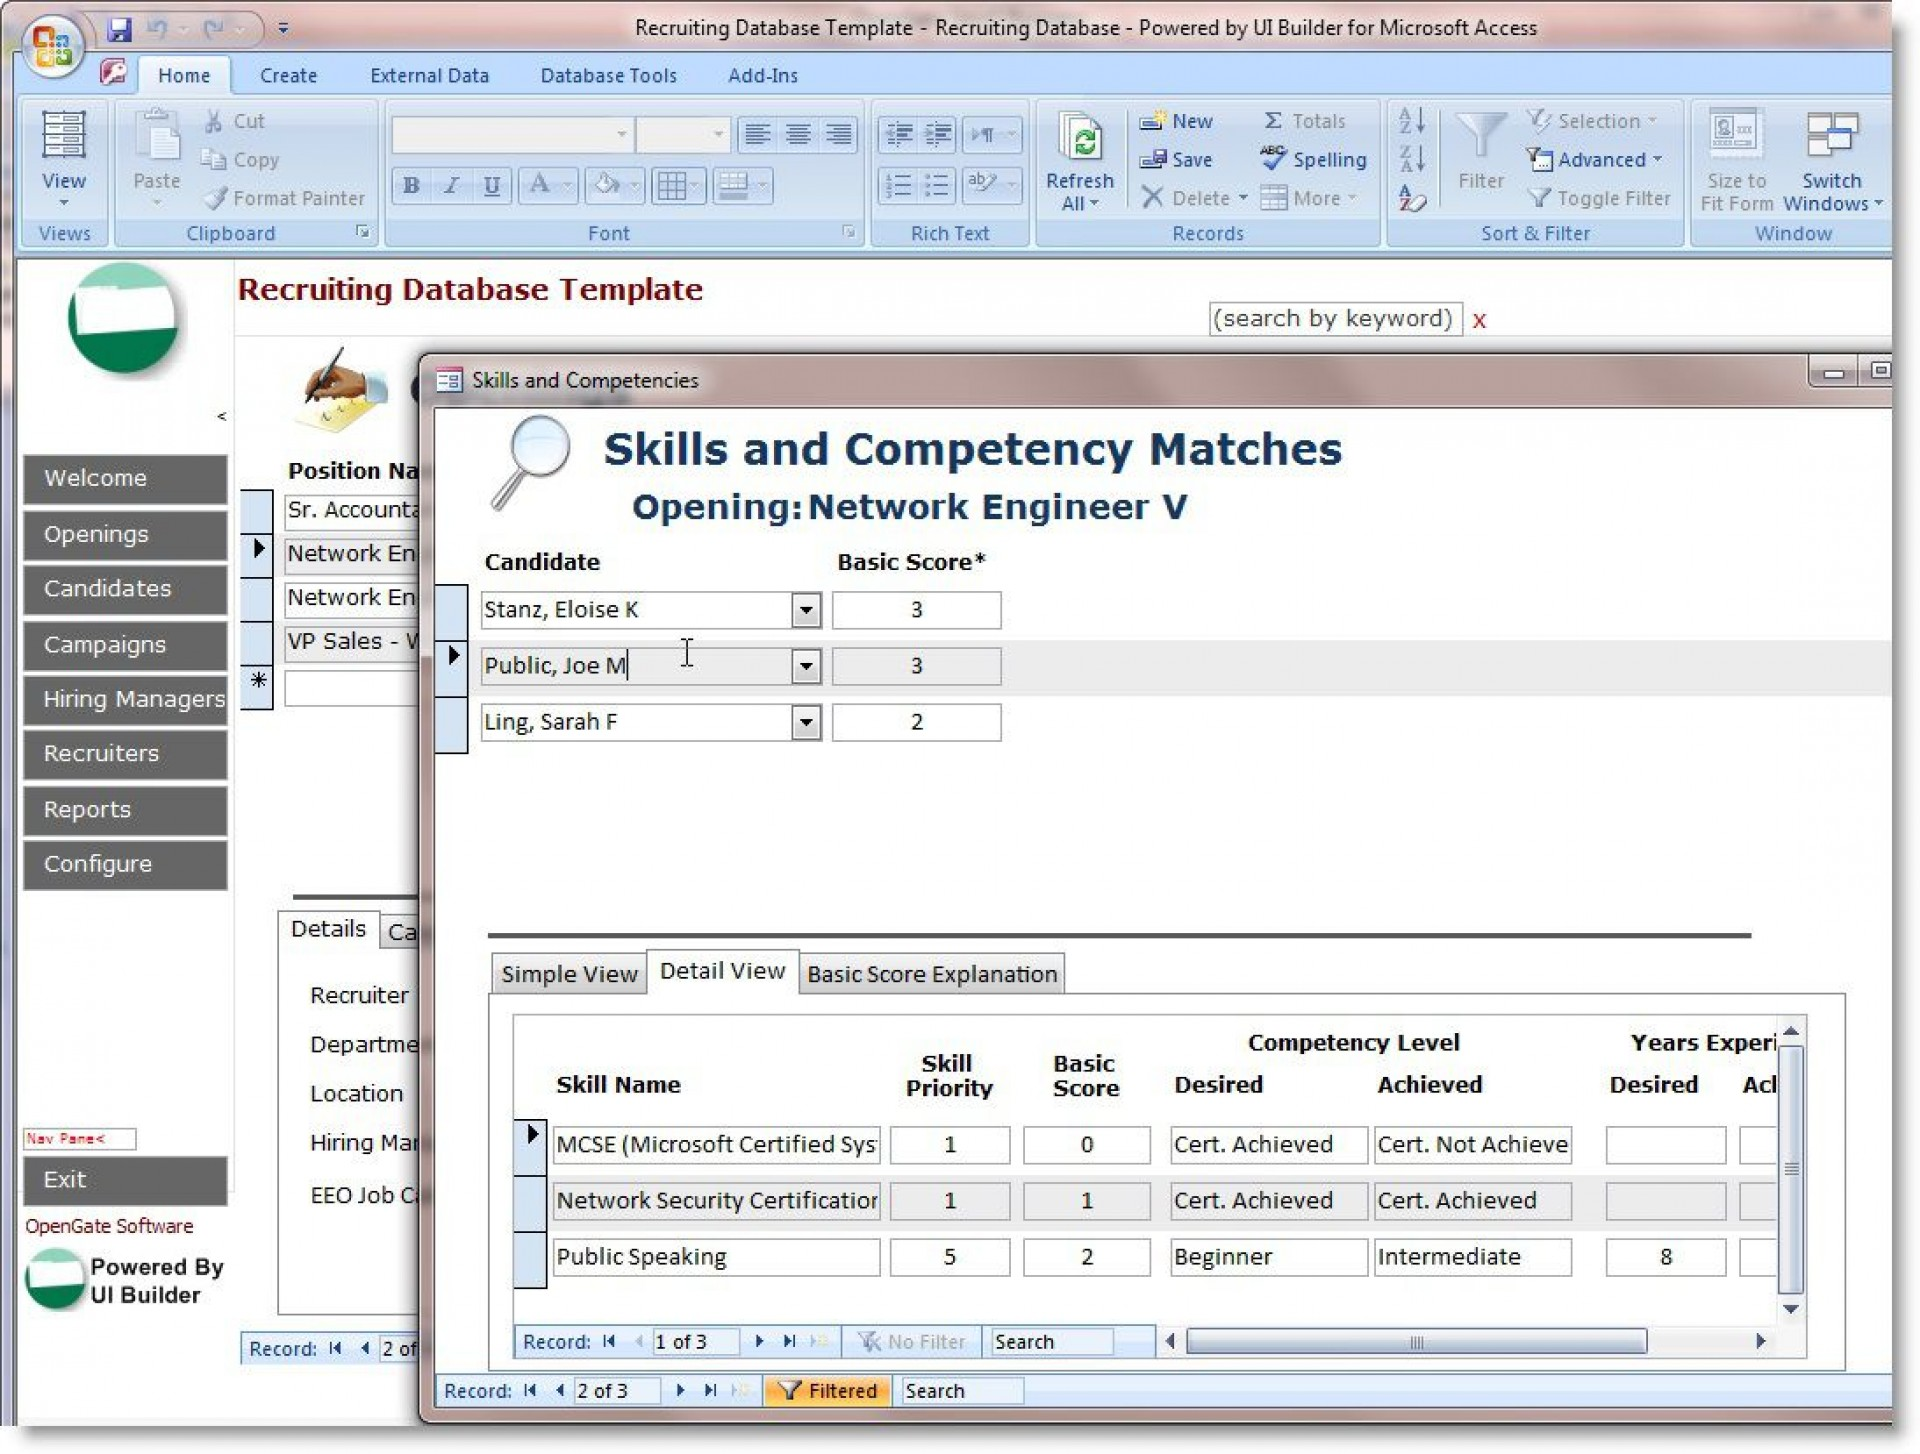 009 Fantastic Free Acces Database Template High Definition  Templates For Small Busines Hr Microsoft Inventory1920